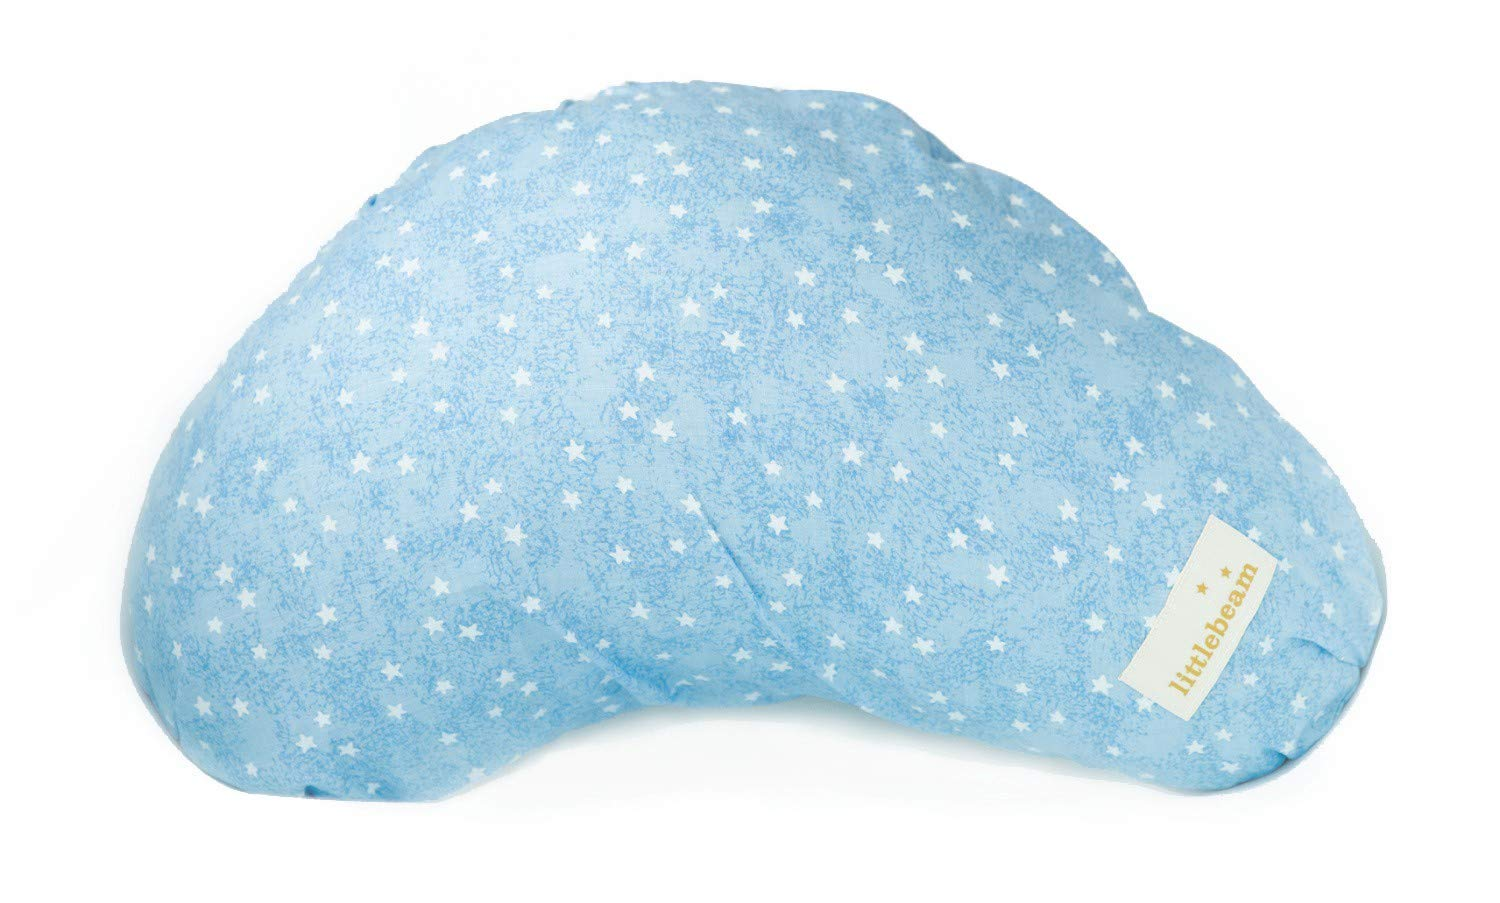 littlebeam Portable and Versatile Baby Bottle and Breastfeeding Nursing Support Pillow with Memory Foam ~ Starry Night by littlebeam